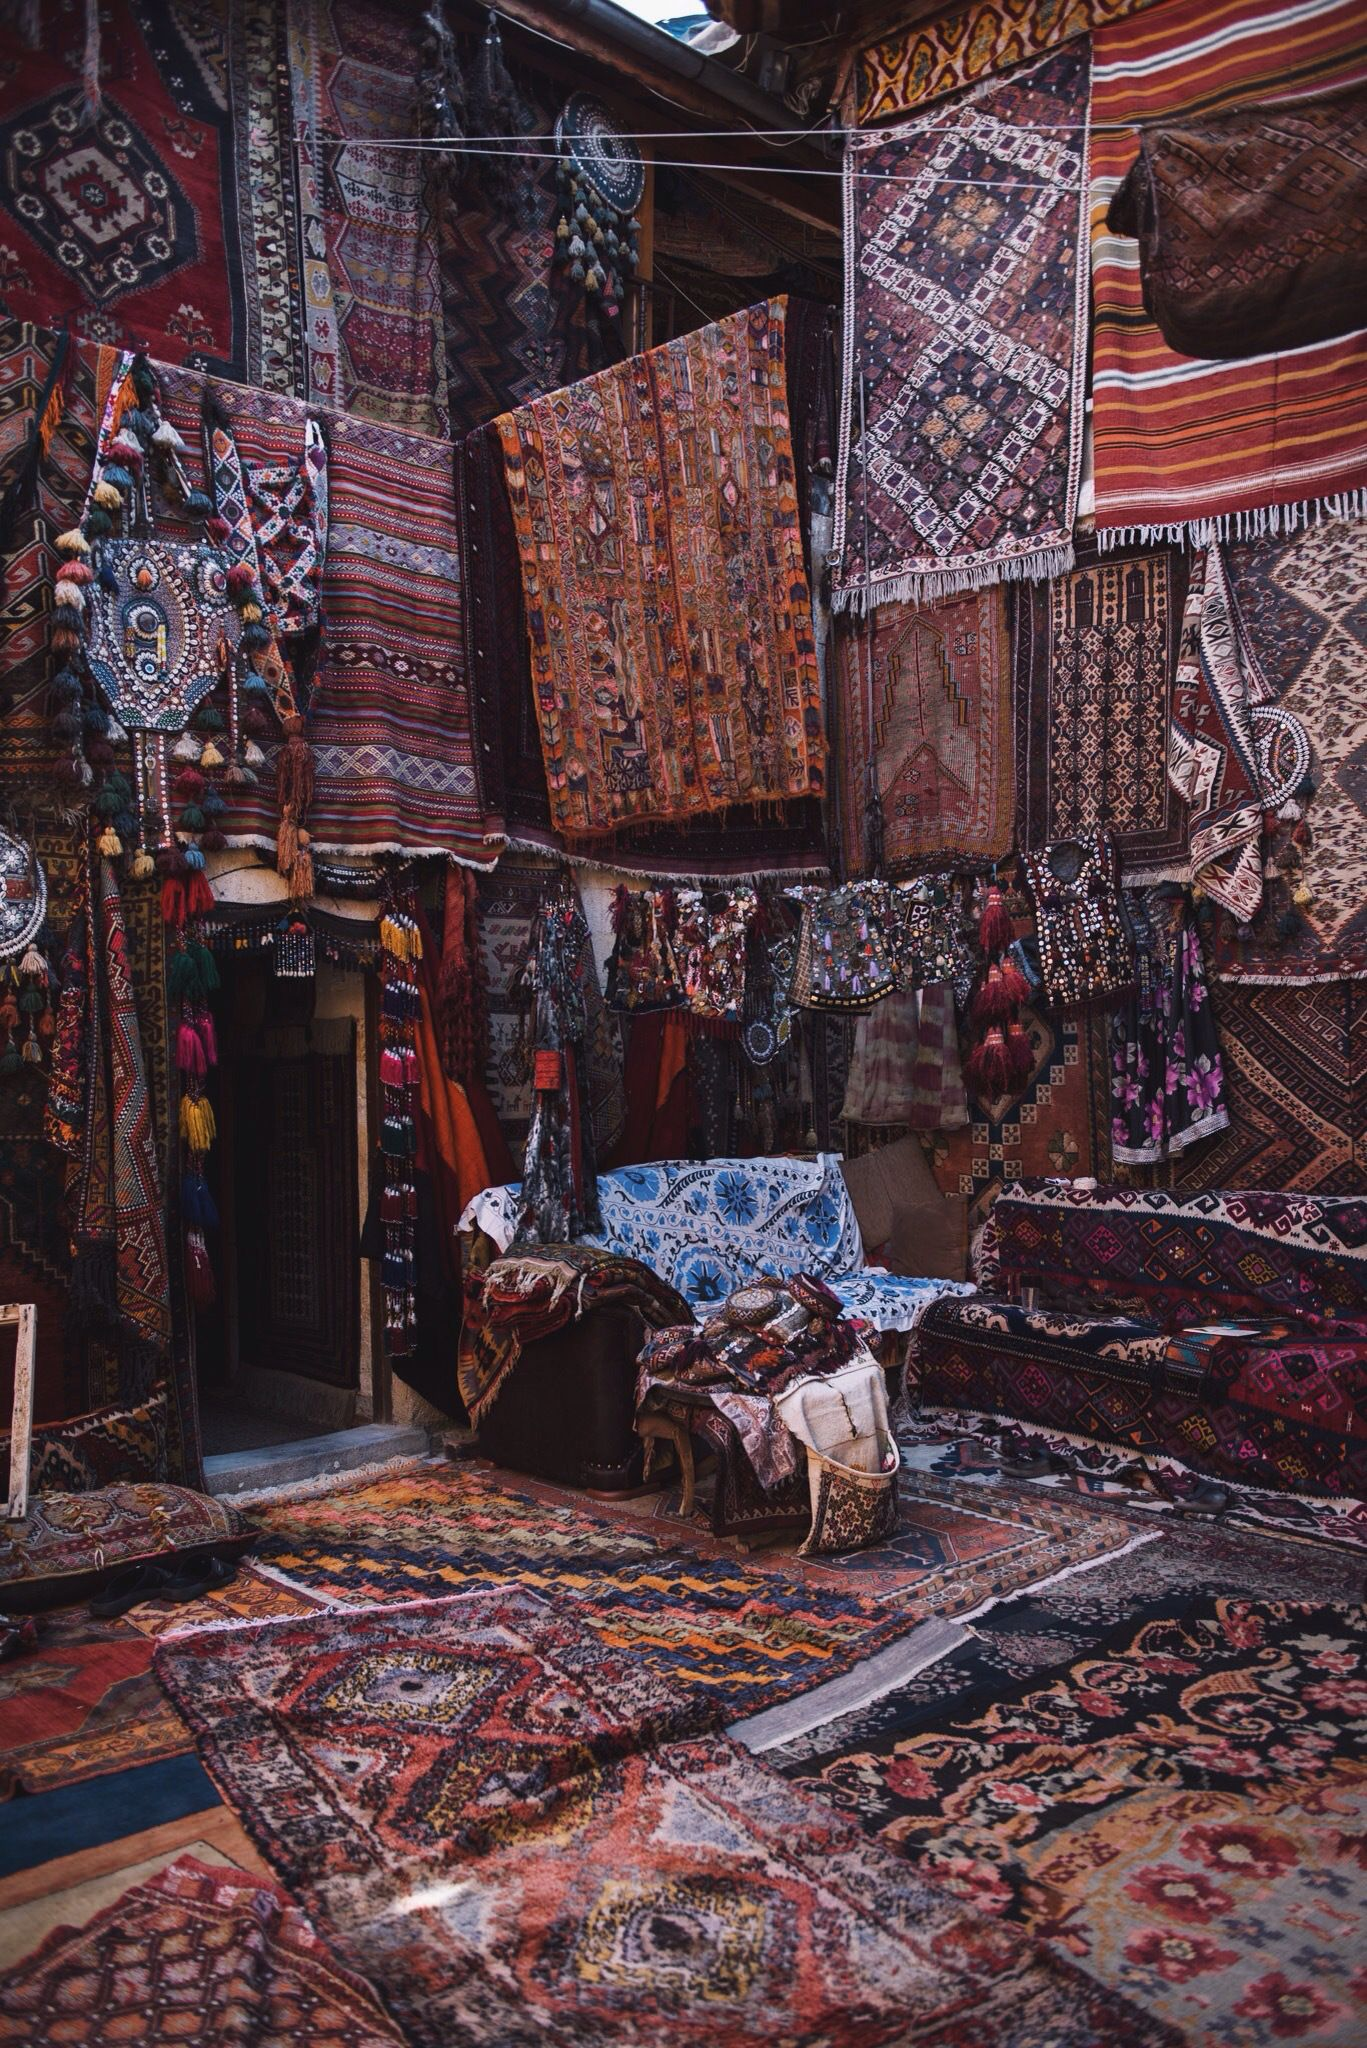 Traditional Carpets And Rugs In Goreme A Town The Cadocia Region Of Central Turkey